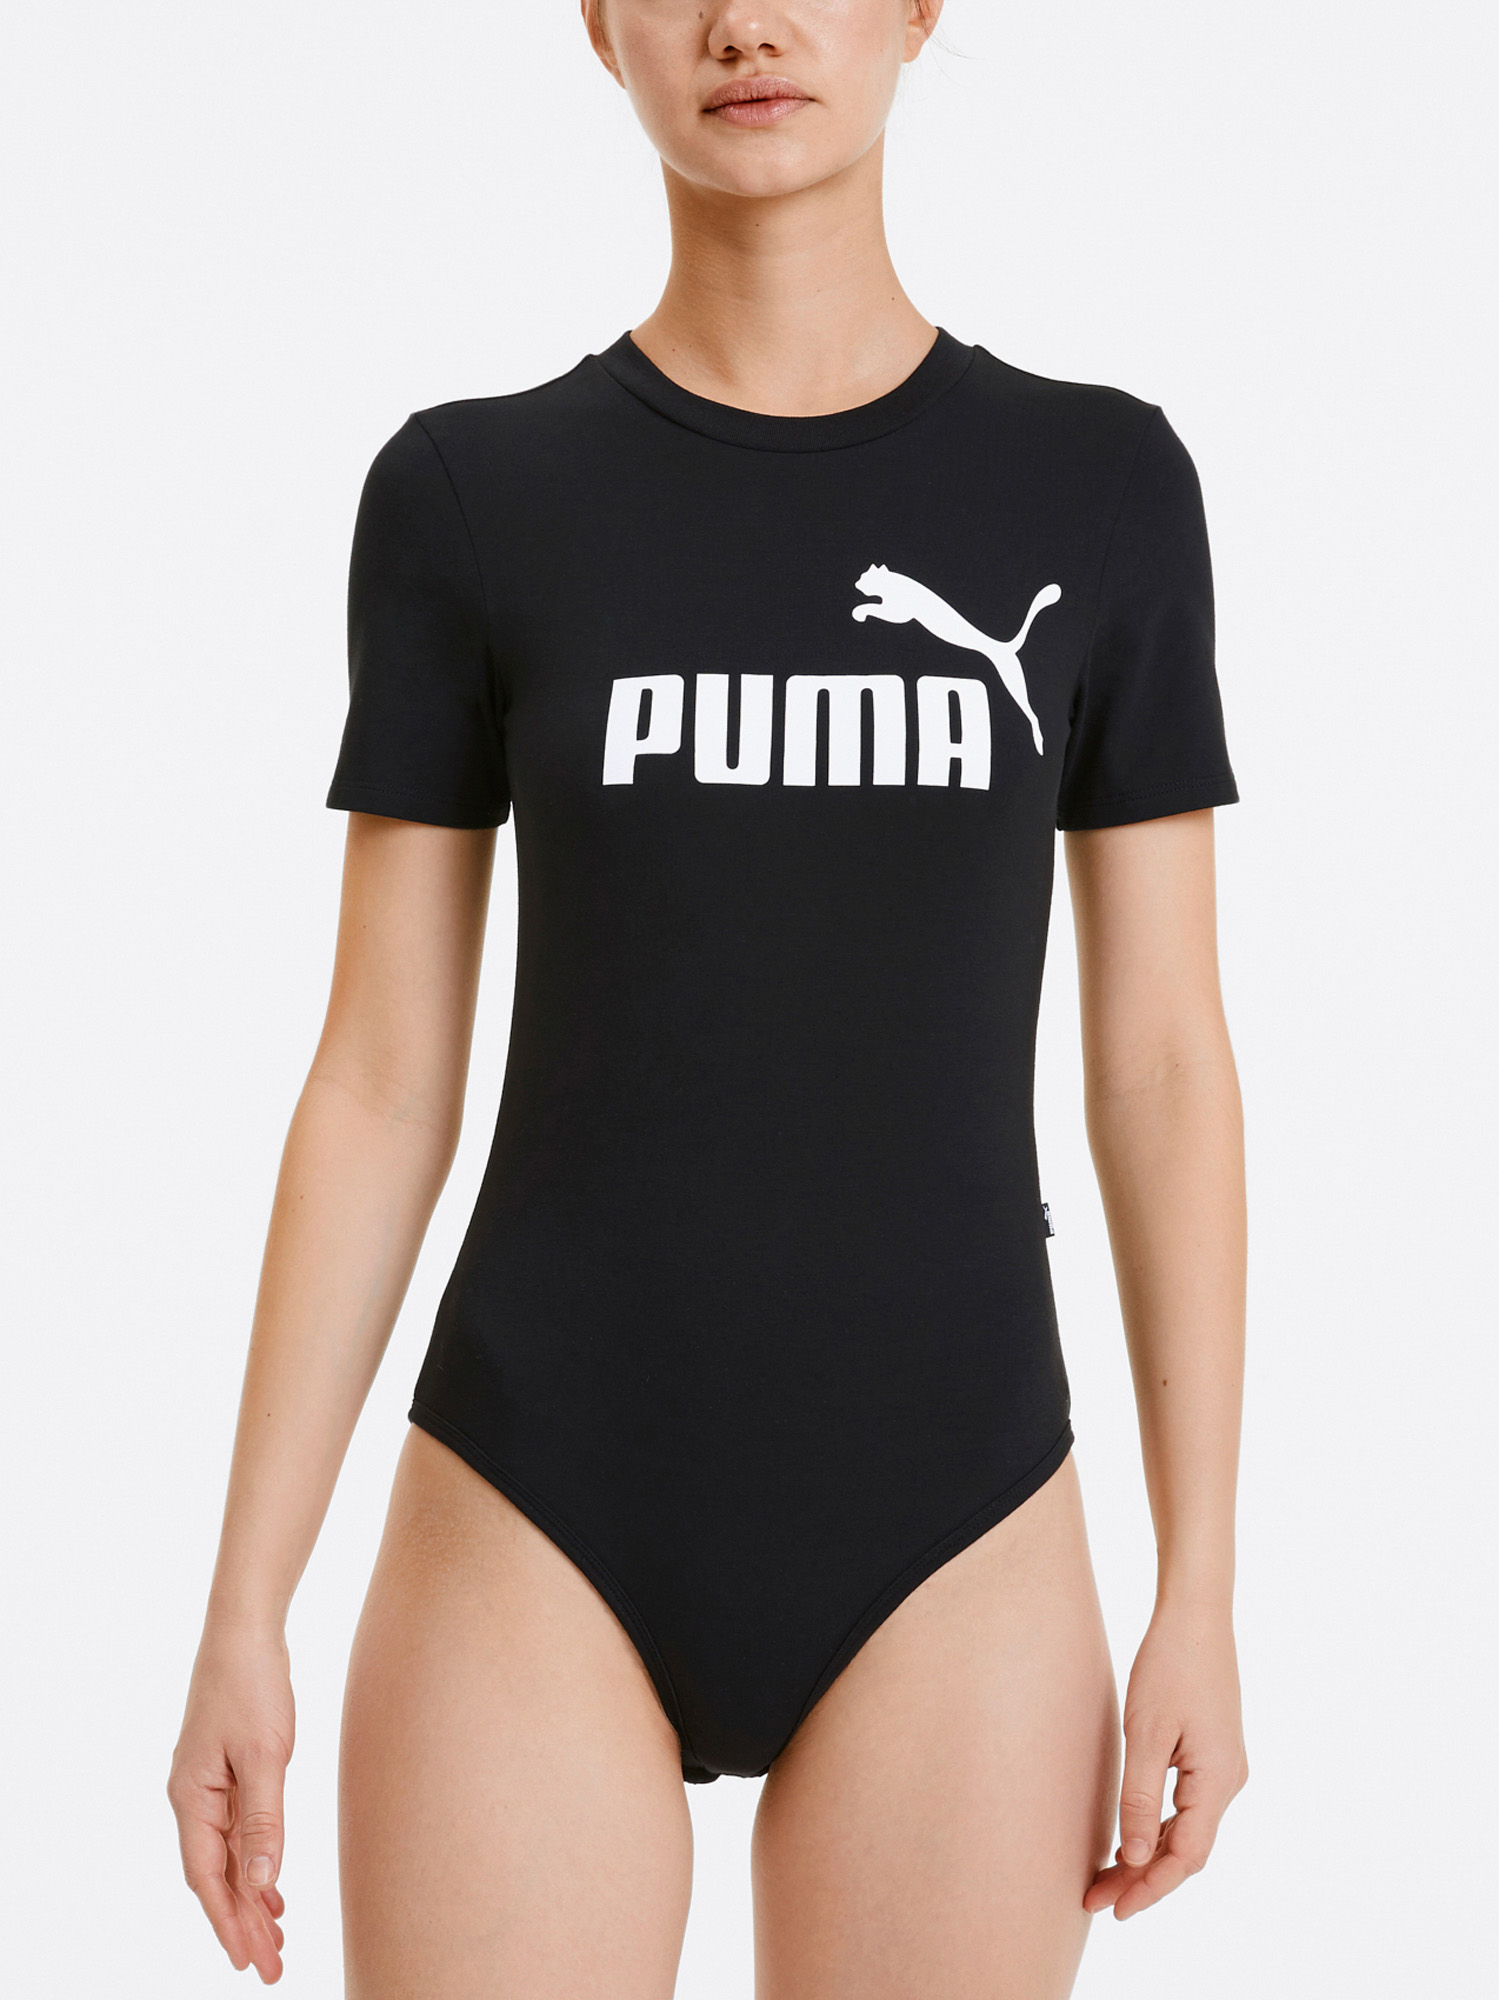 Body Puma Ess+ Bodysuit (1)